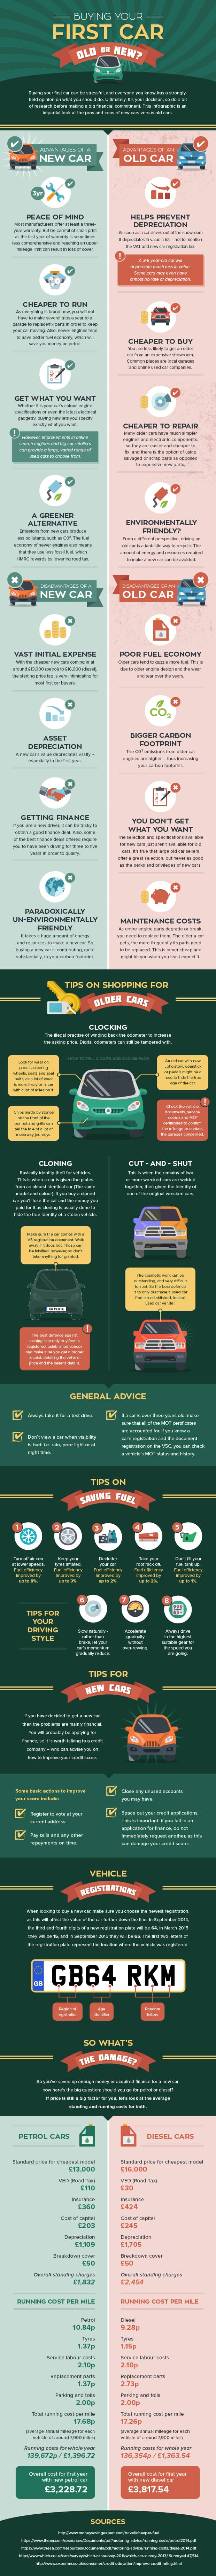 Motorparks Buying your first car full - What to Know When Buying Your First Car